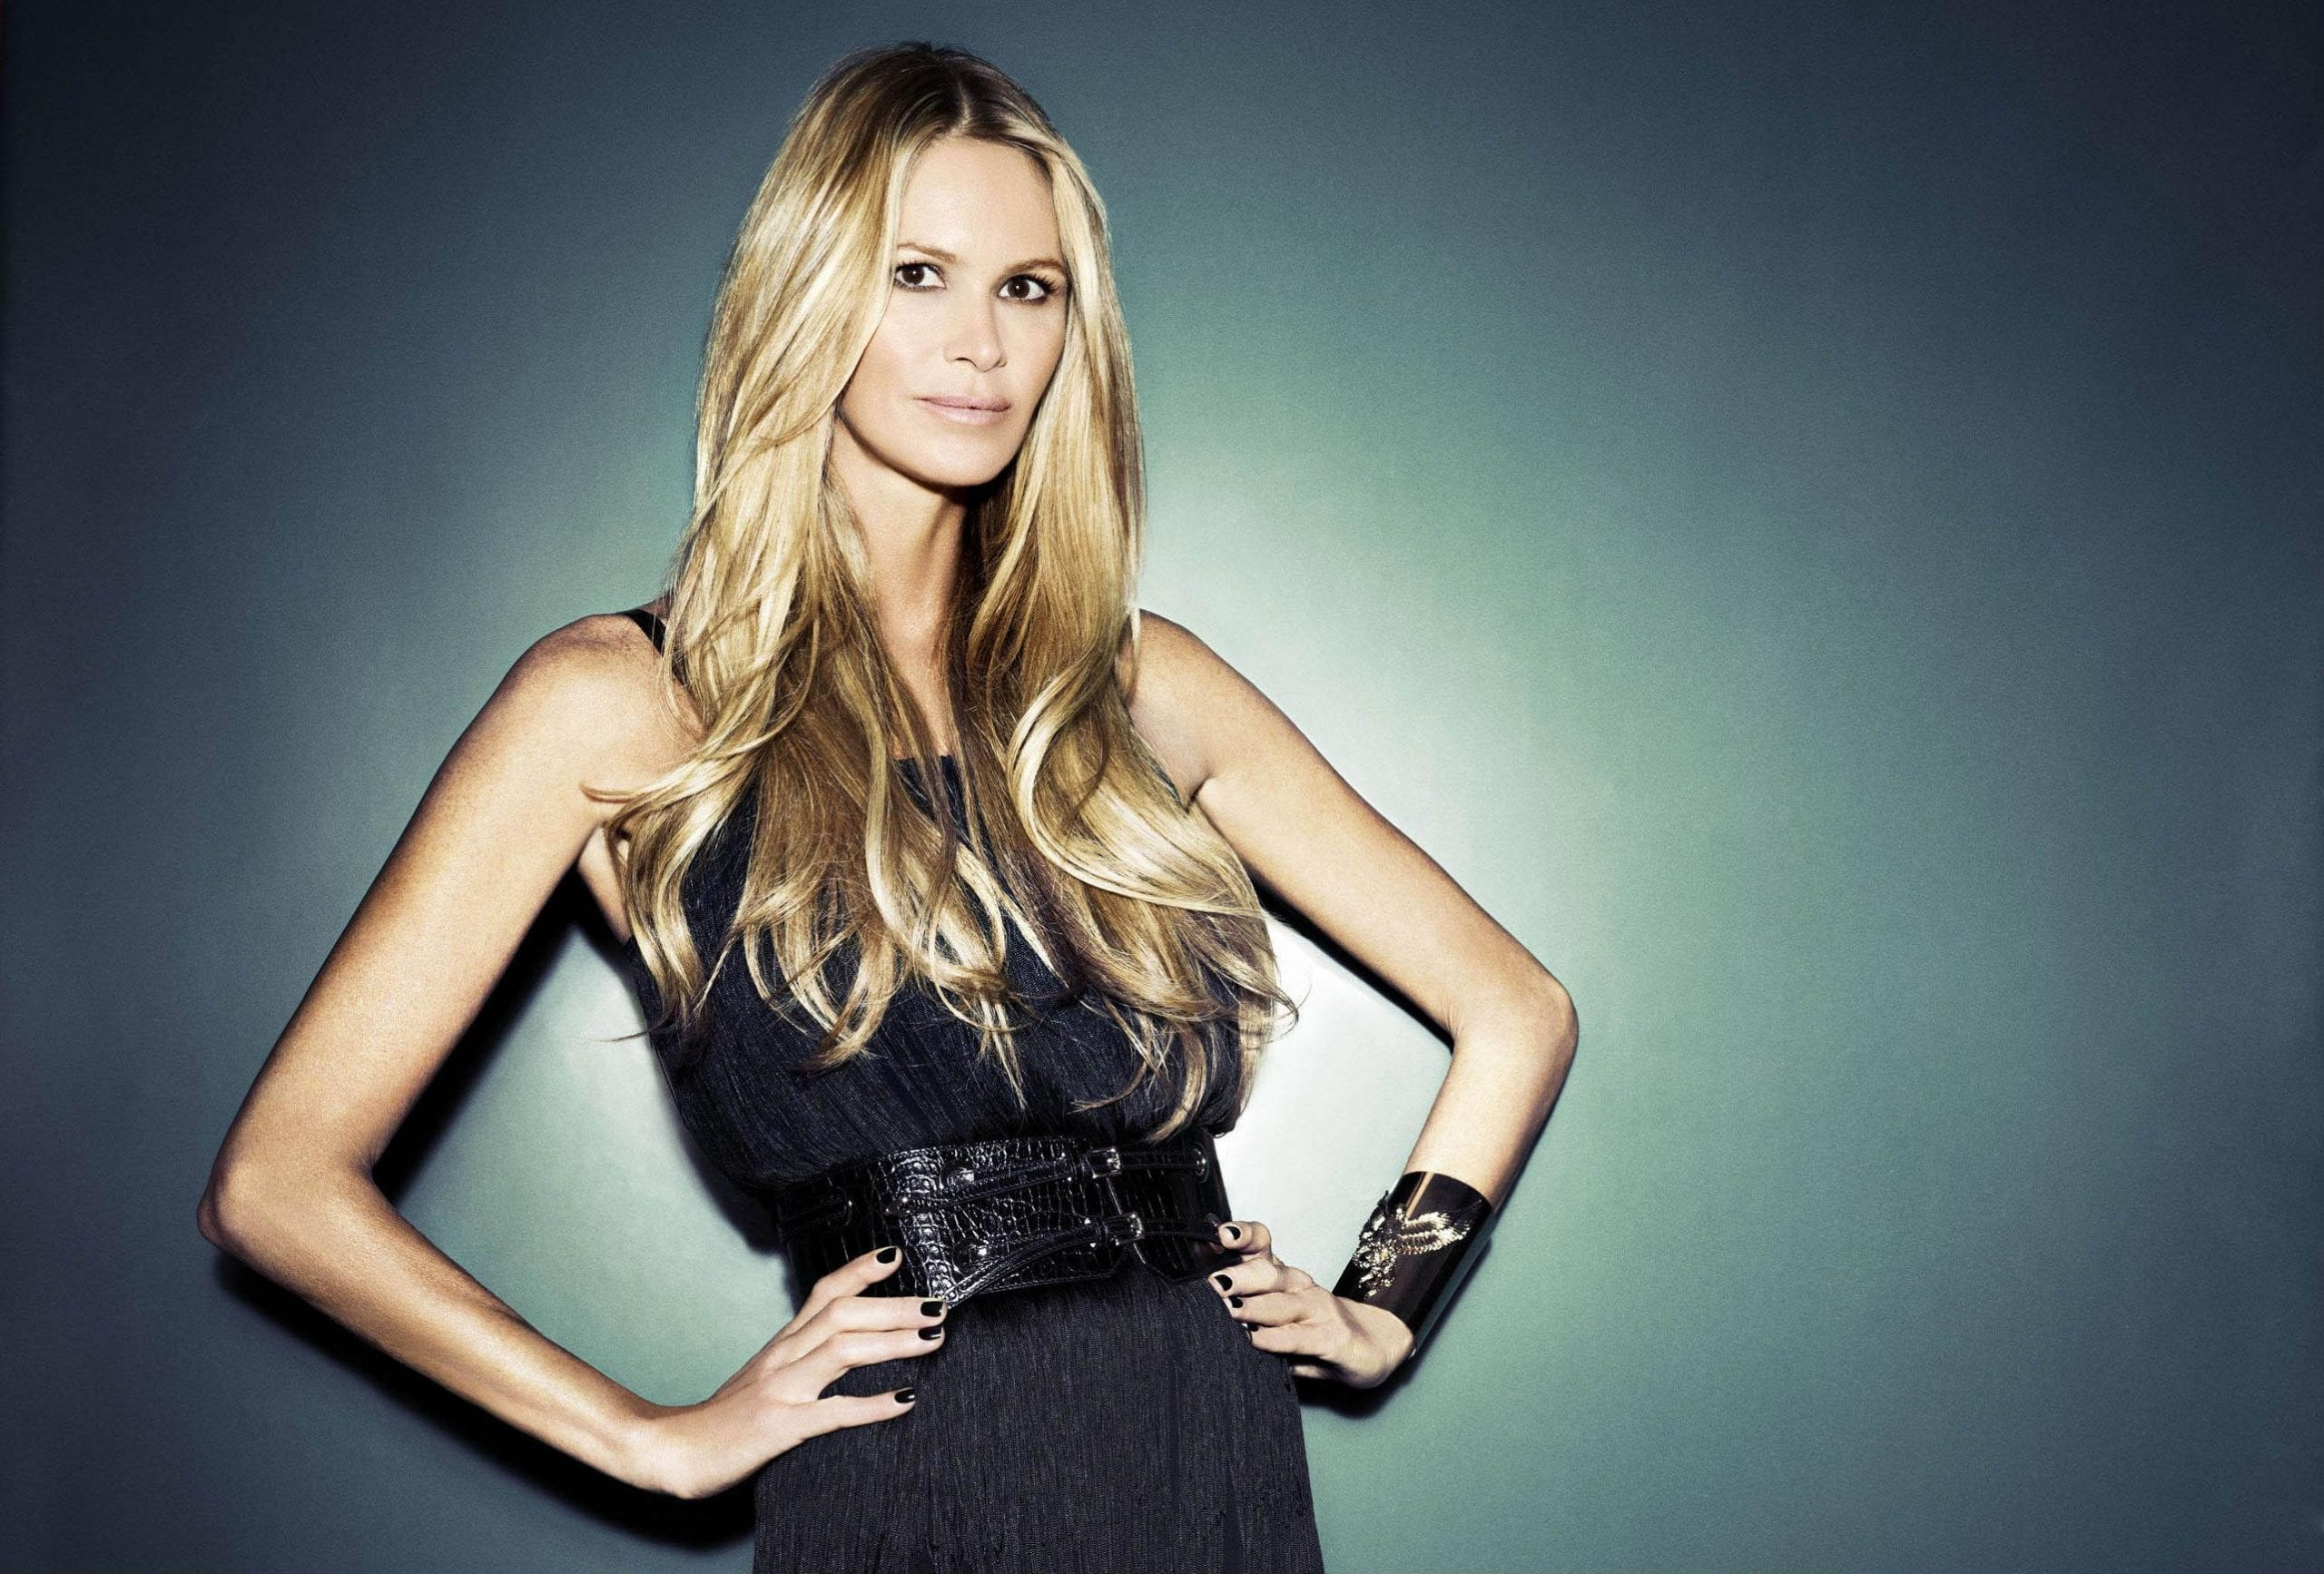 Who Is Elle Macpherson Dating?